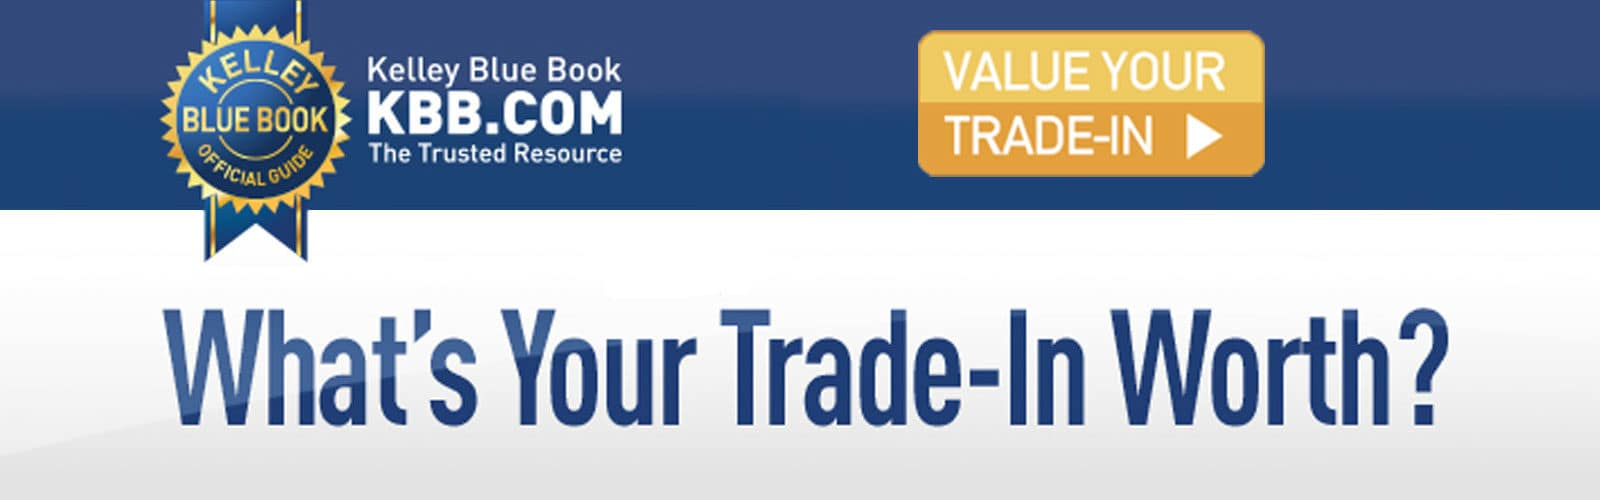 KBB What's your trade-in worth?